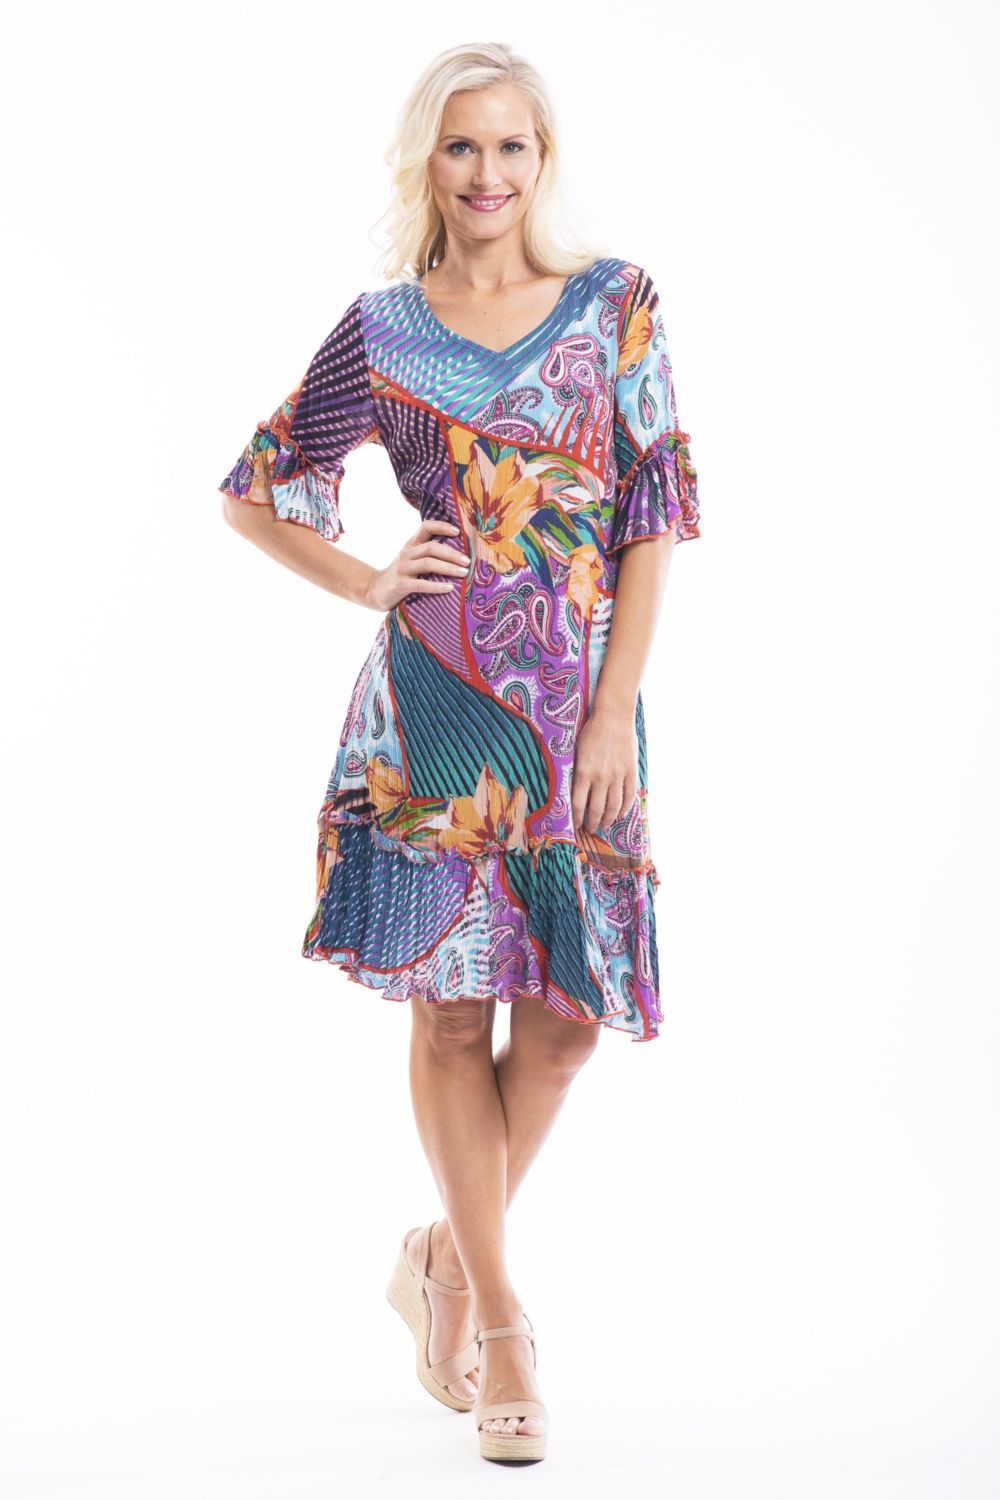 Penny's Patch Tunic | I Love Tunics | Tunic Tops | Tunic | Tunic Dresses  | womens clothing online